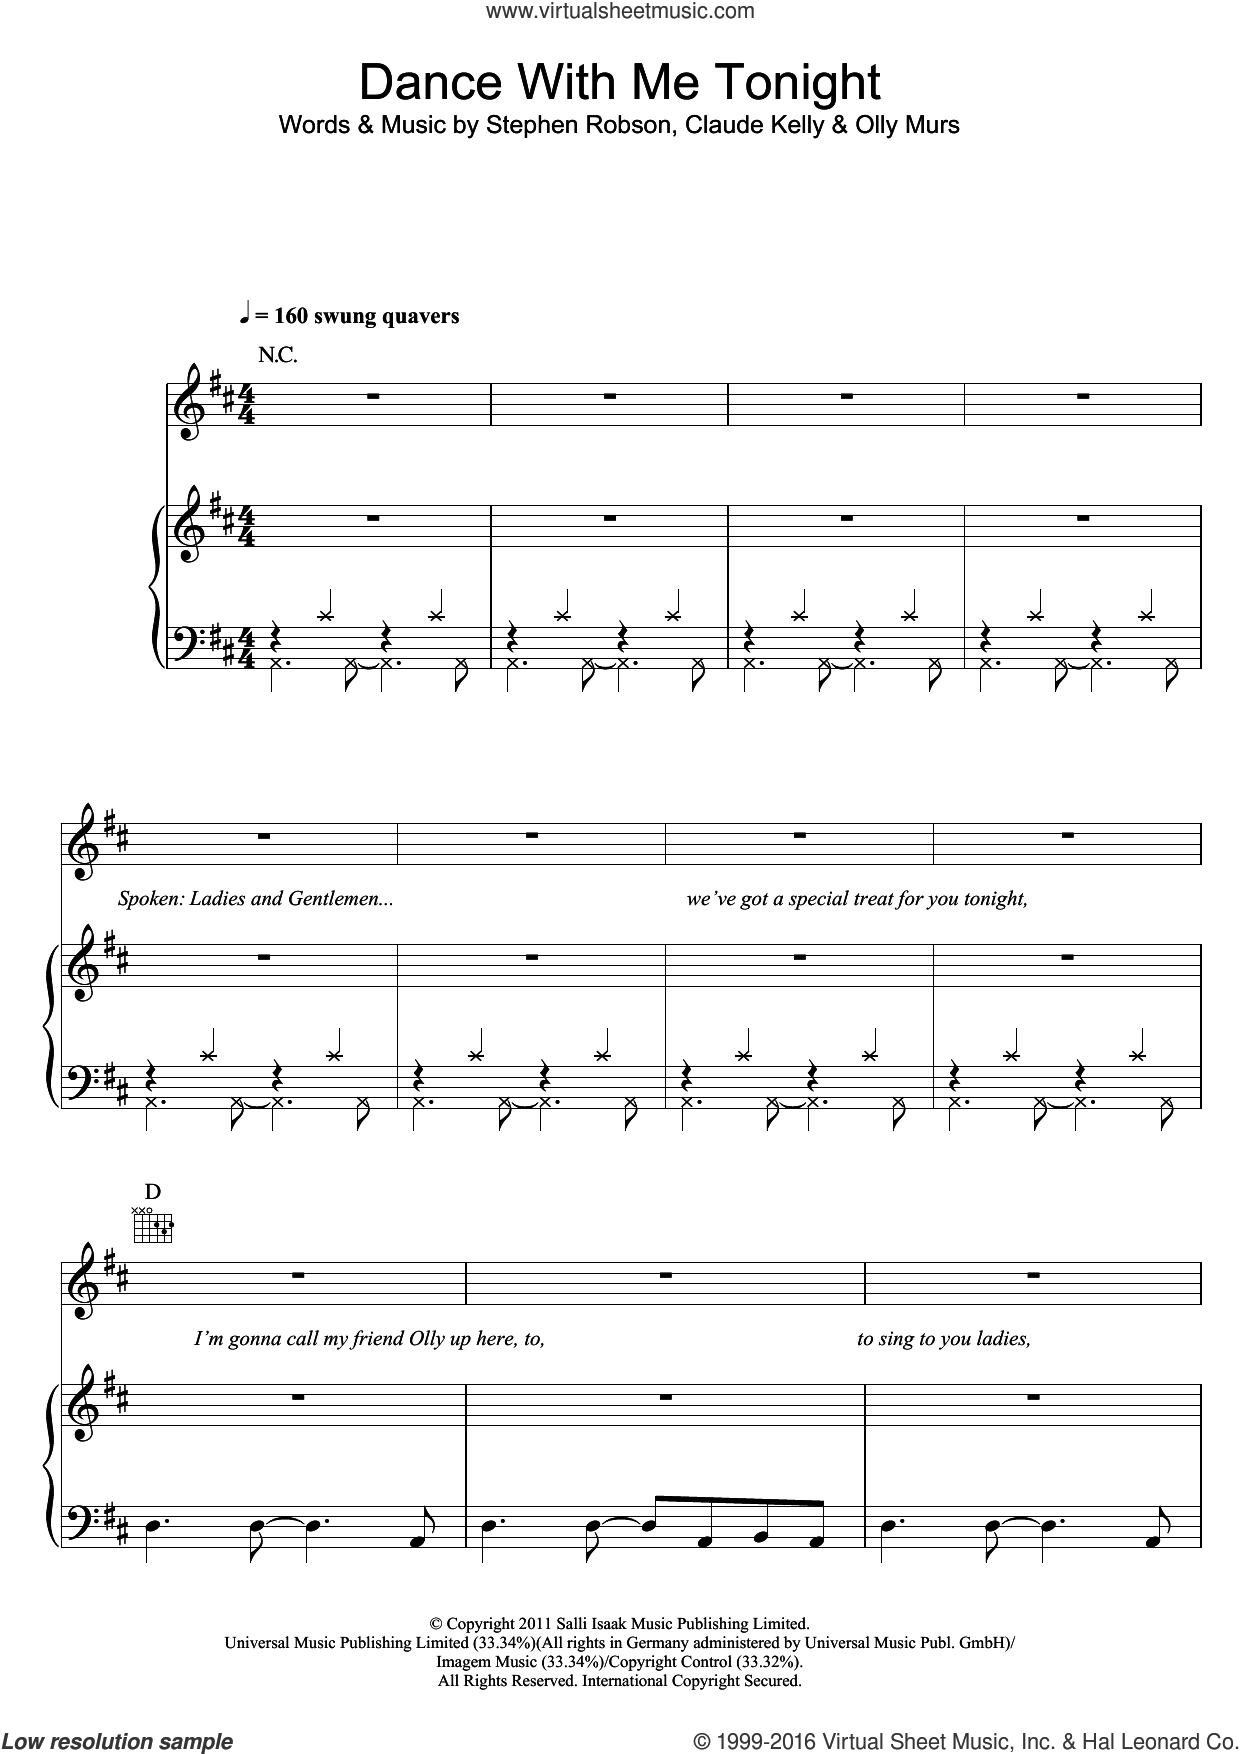 Dance With Me Tonight sheet music for voice, piano or guitar by Olly Murs, Claude Kelly and Steve Robson, intermediate skill level